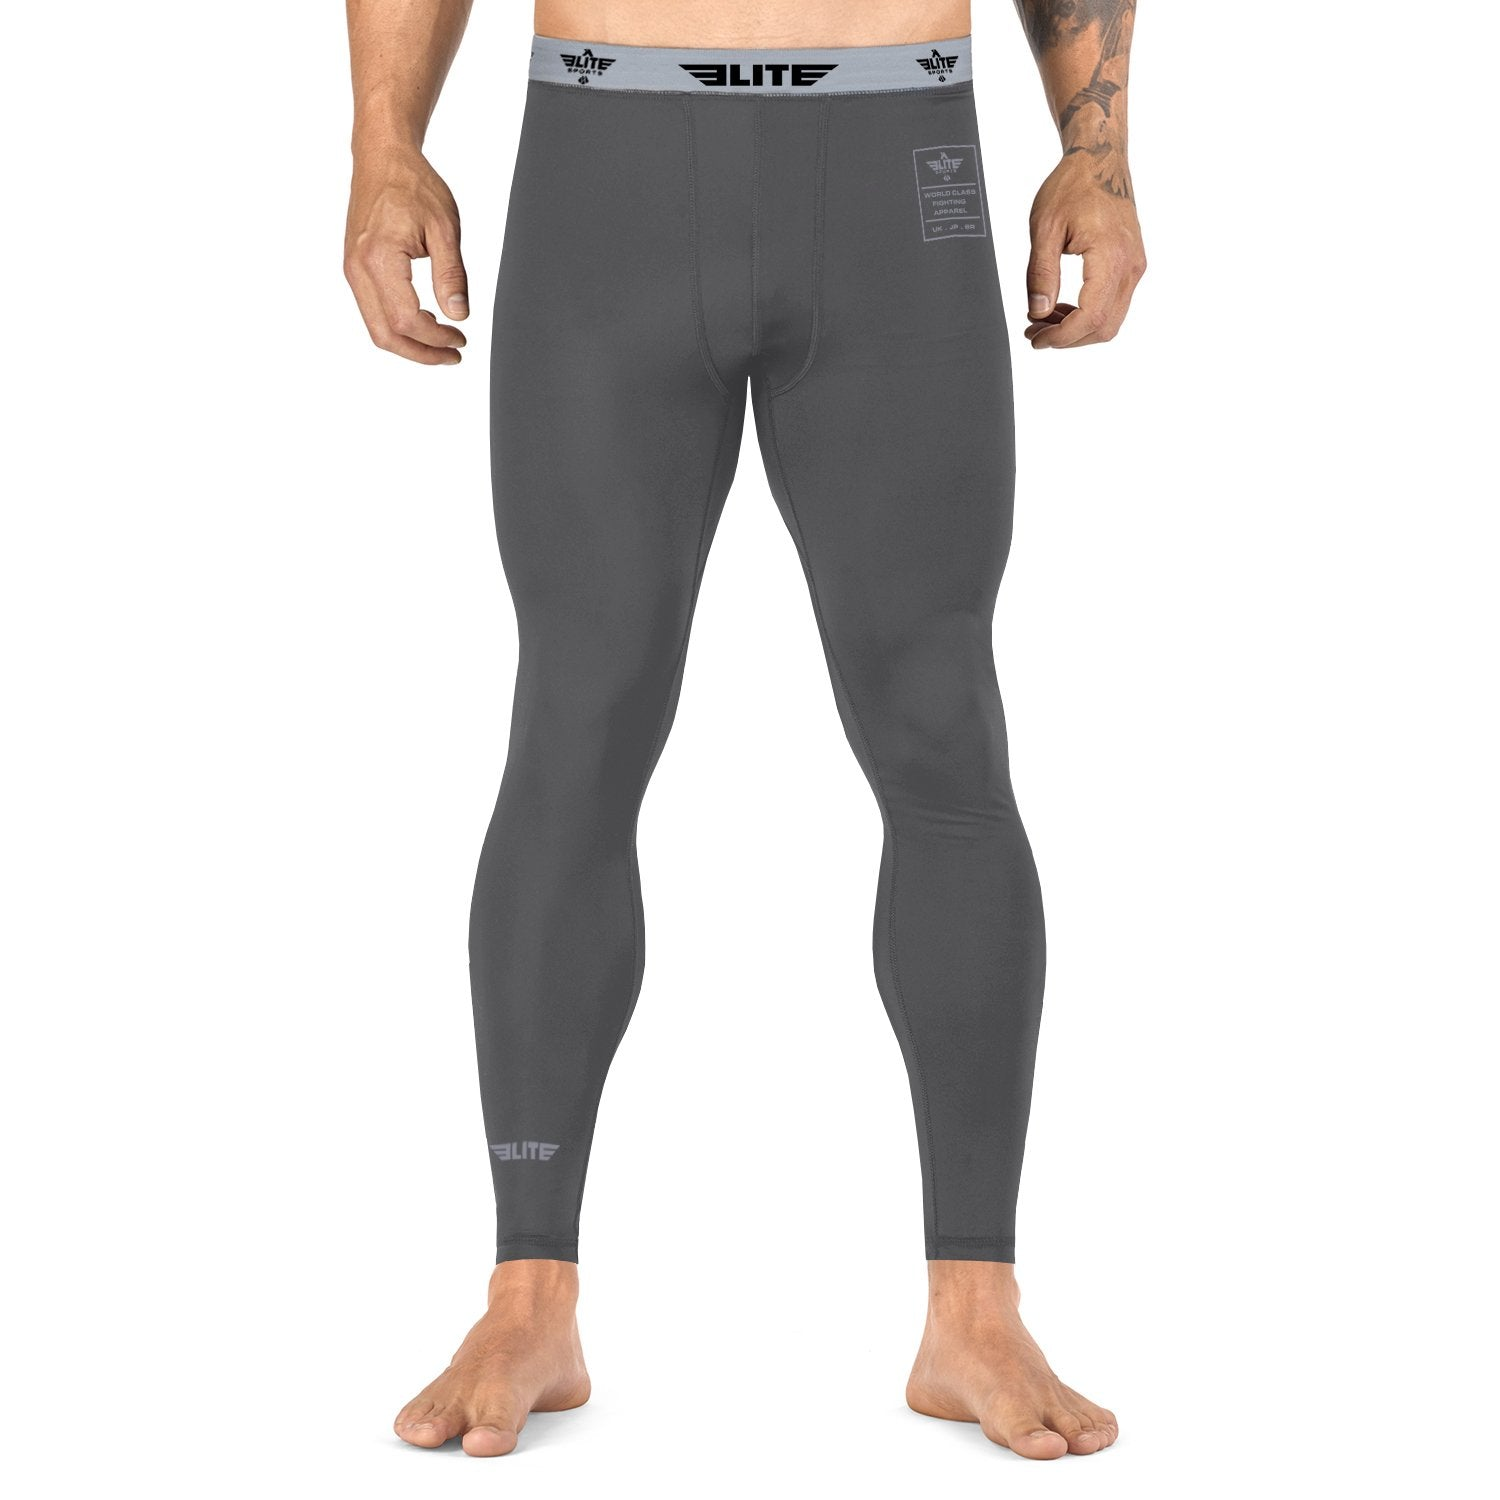 Elite Sports Plain Gray Compression Judo Spat Pants